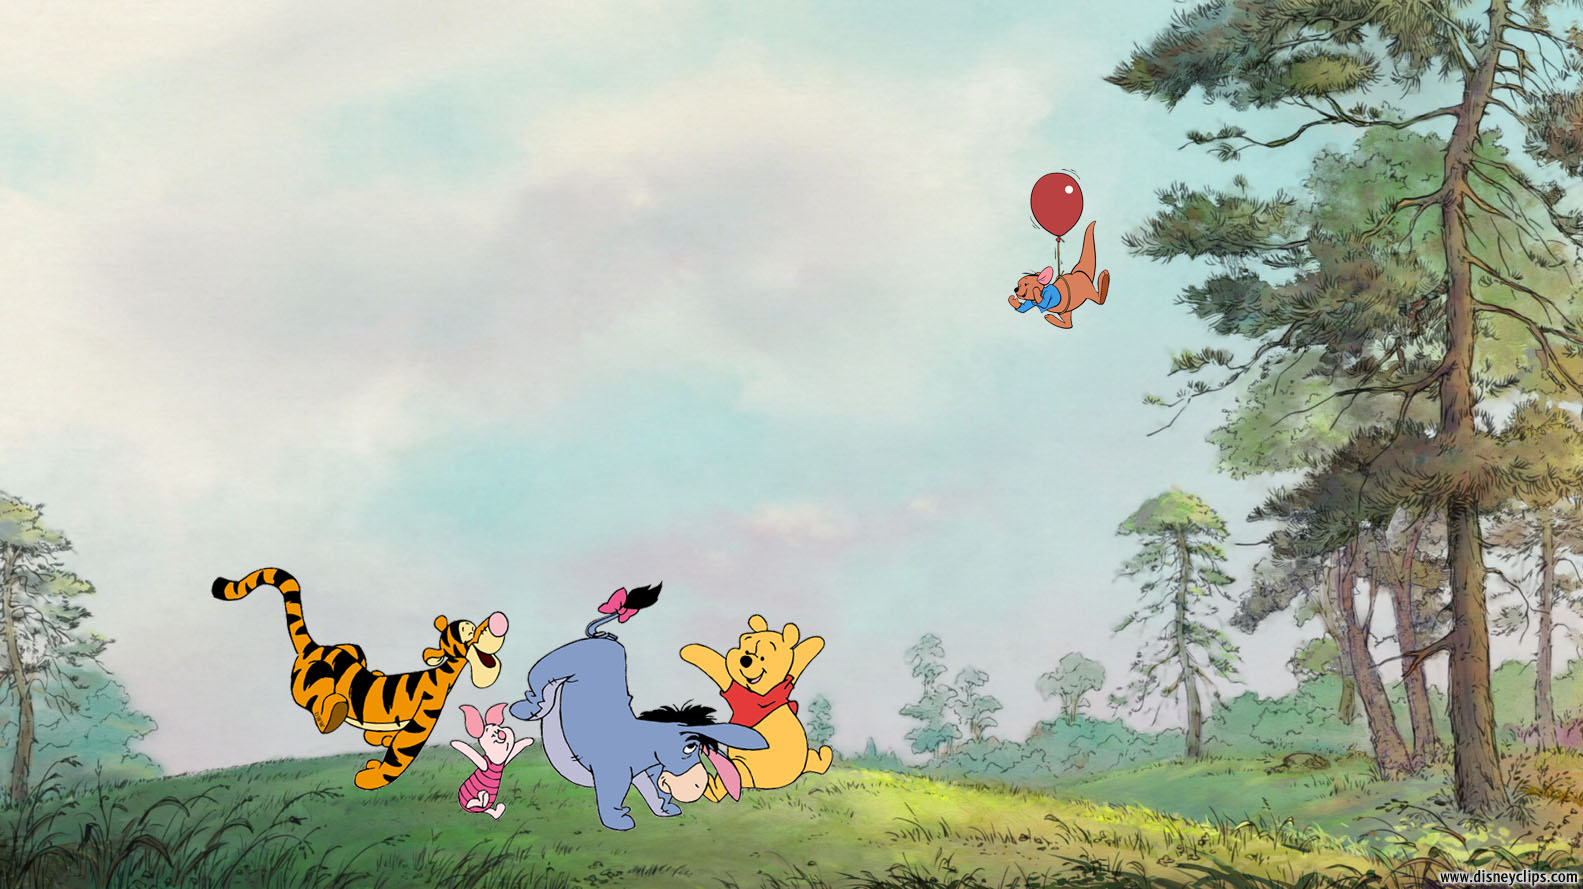 Winnie The Pooh Fall Wallpaper Winnie The Pooh And Friends Wallpaper Disneyclips Com